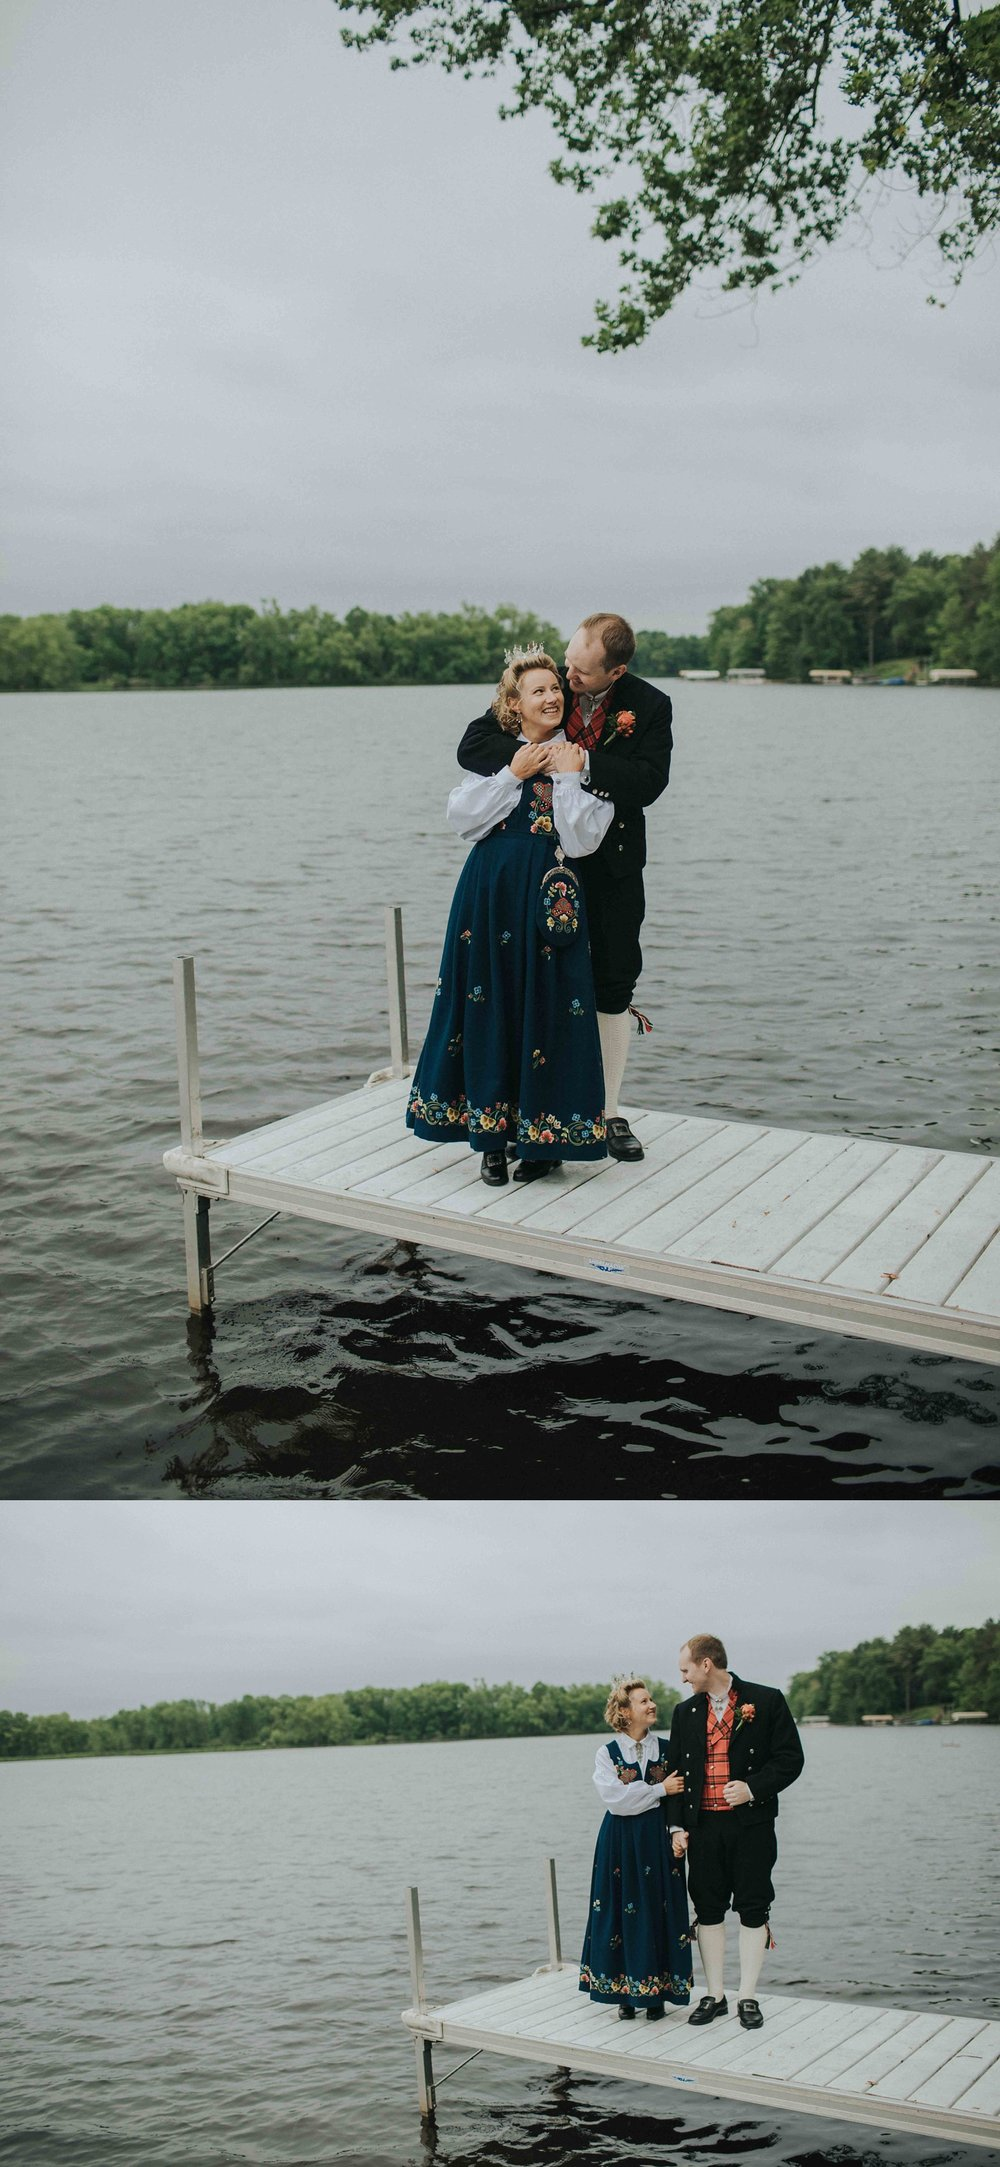 Norwegian Wedding Stevens Point Wisconsin Wedding Photographer Chloe Ann Photography_0008.jpg